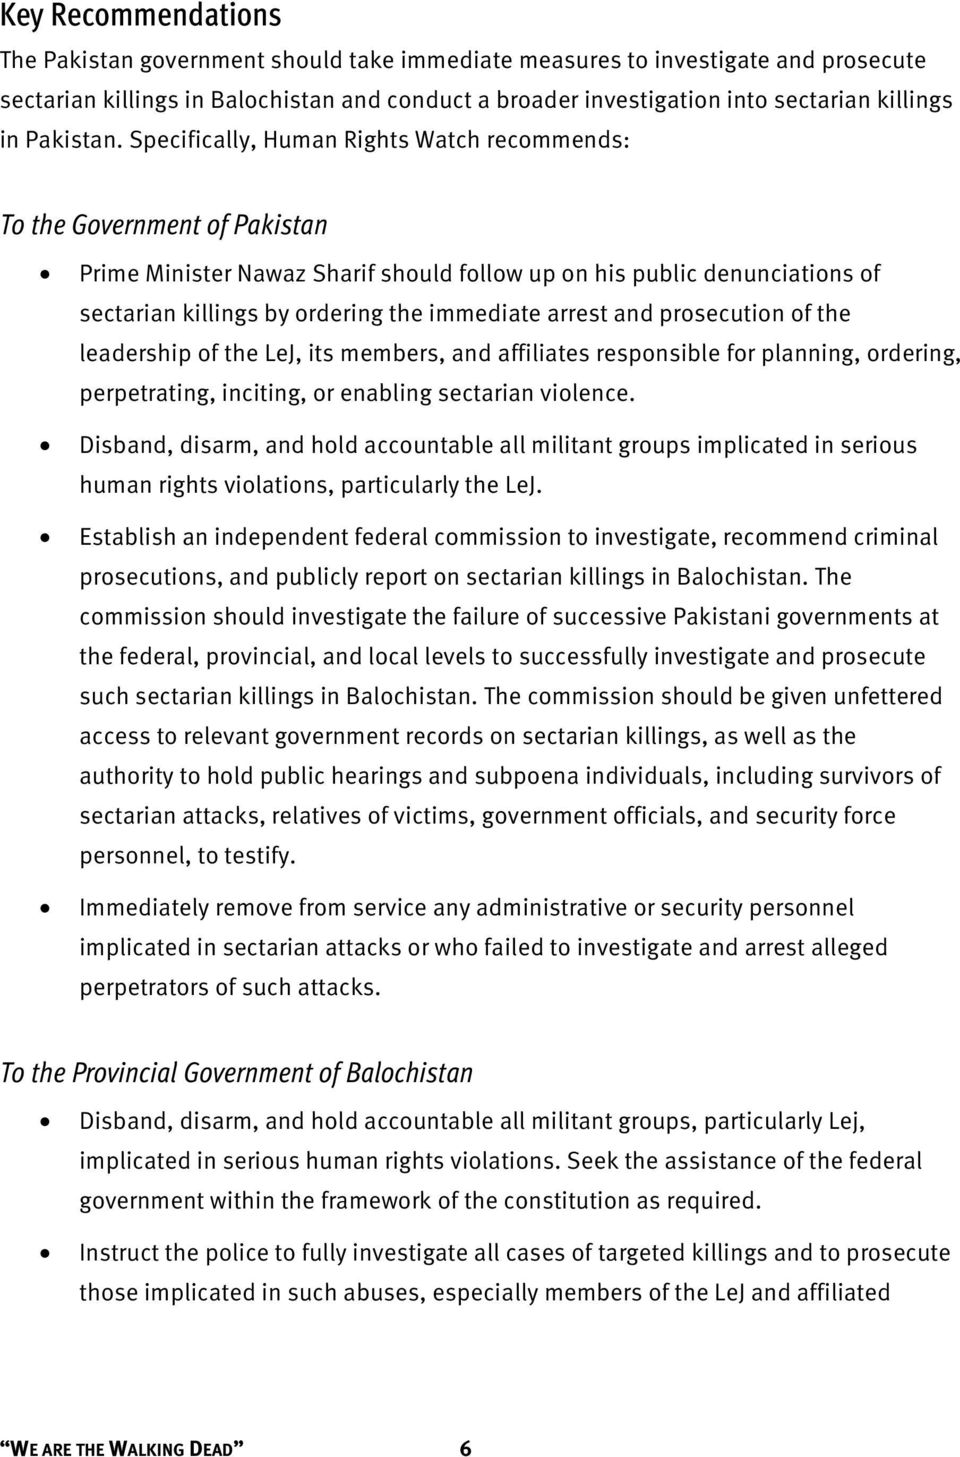 Specifically, Human Rights Watch recommends: To the Government of Pakistan Prime Minister Nawaz Sharif should follow up on his public denunciations of sectarian killings by ordering the immediate